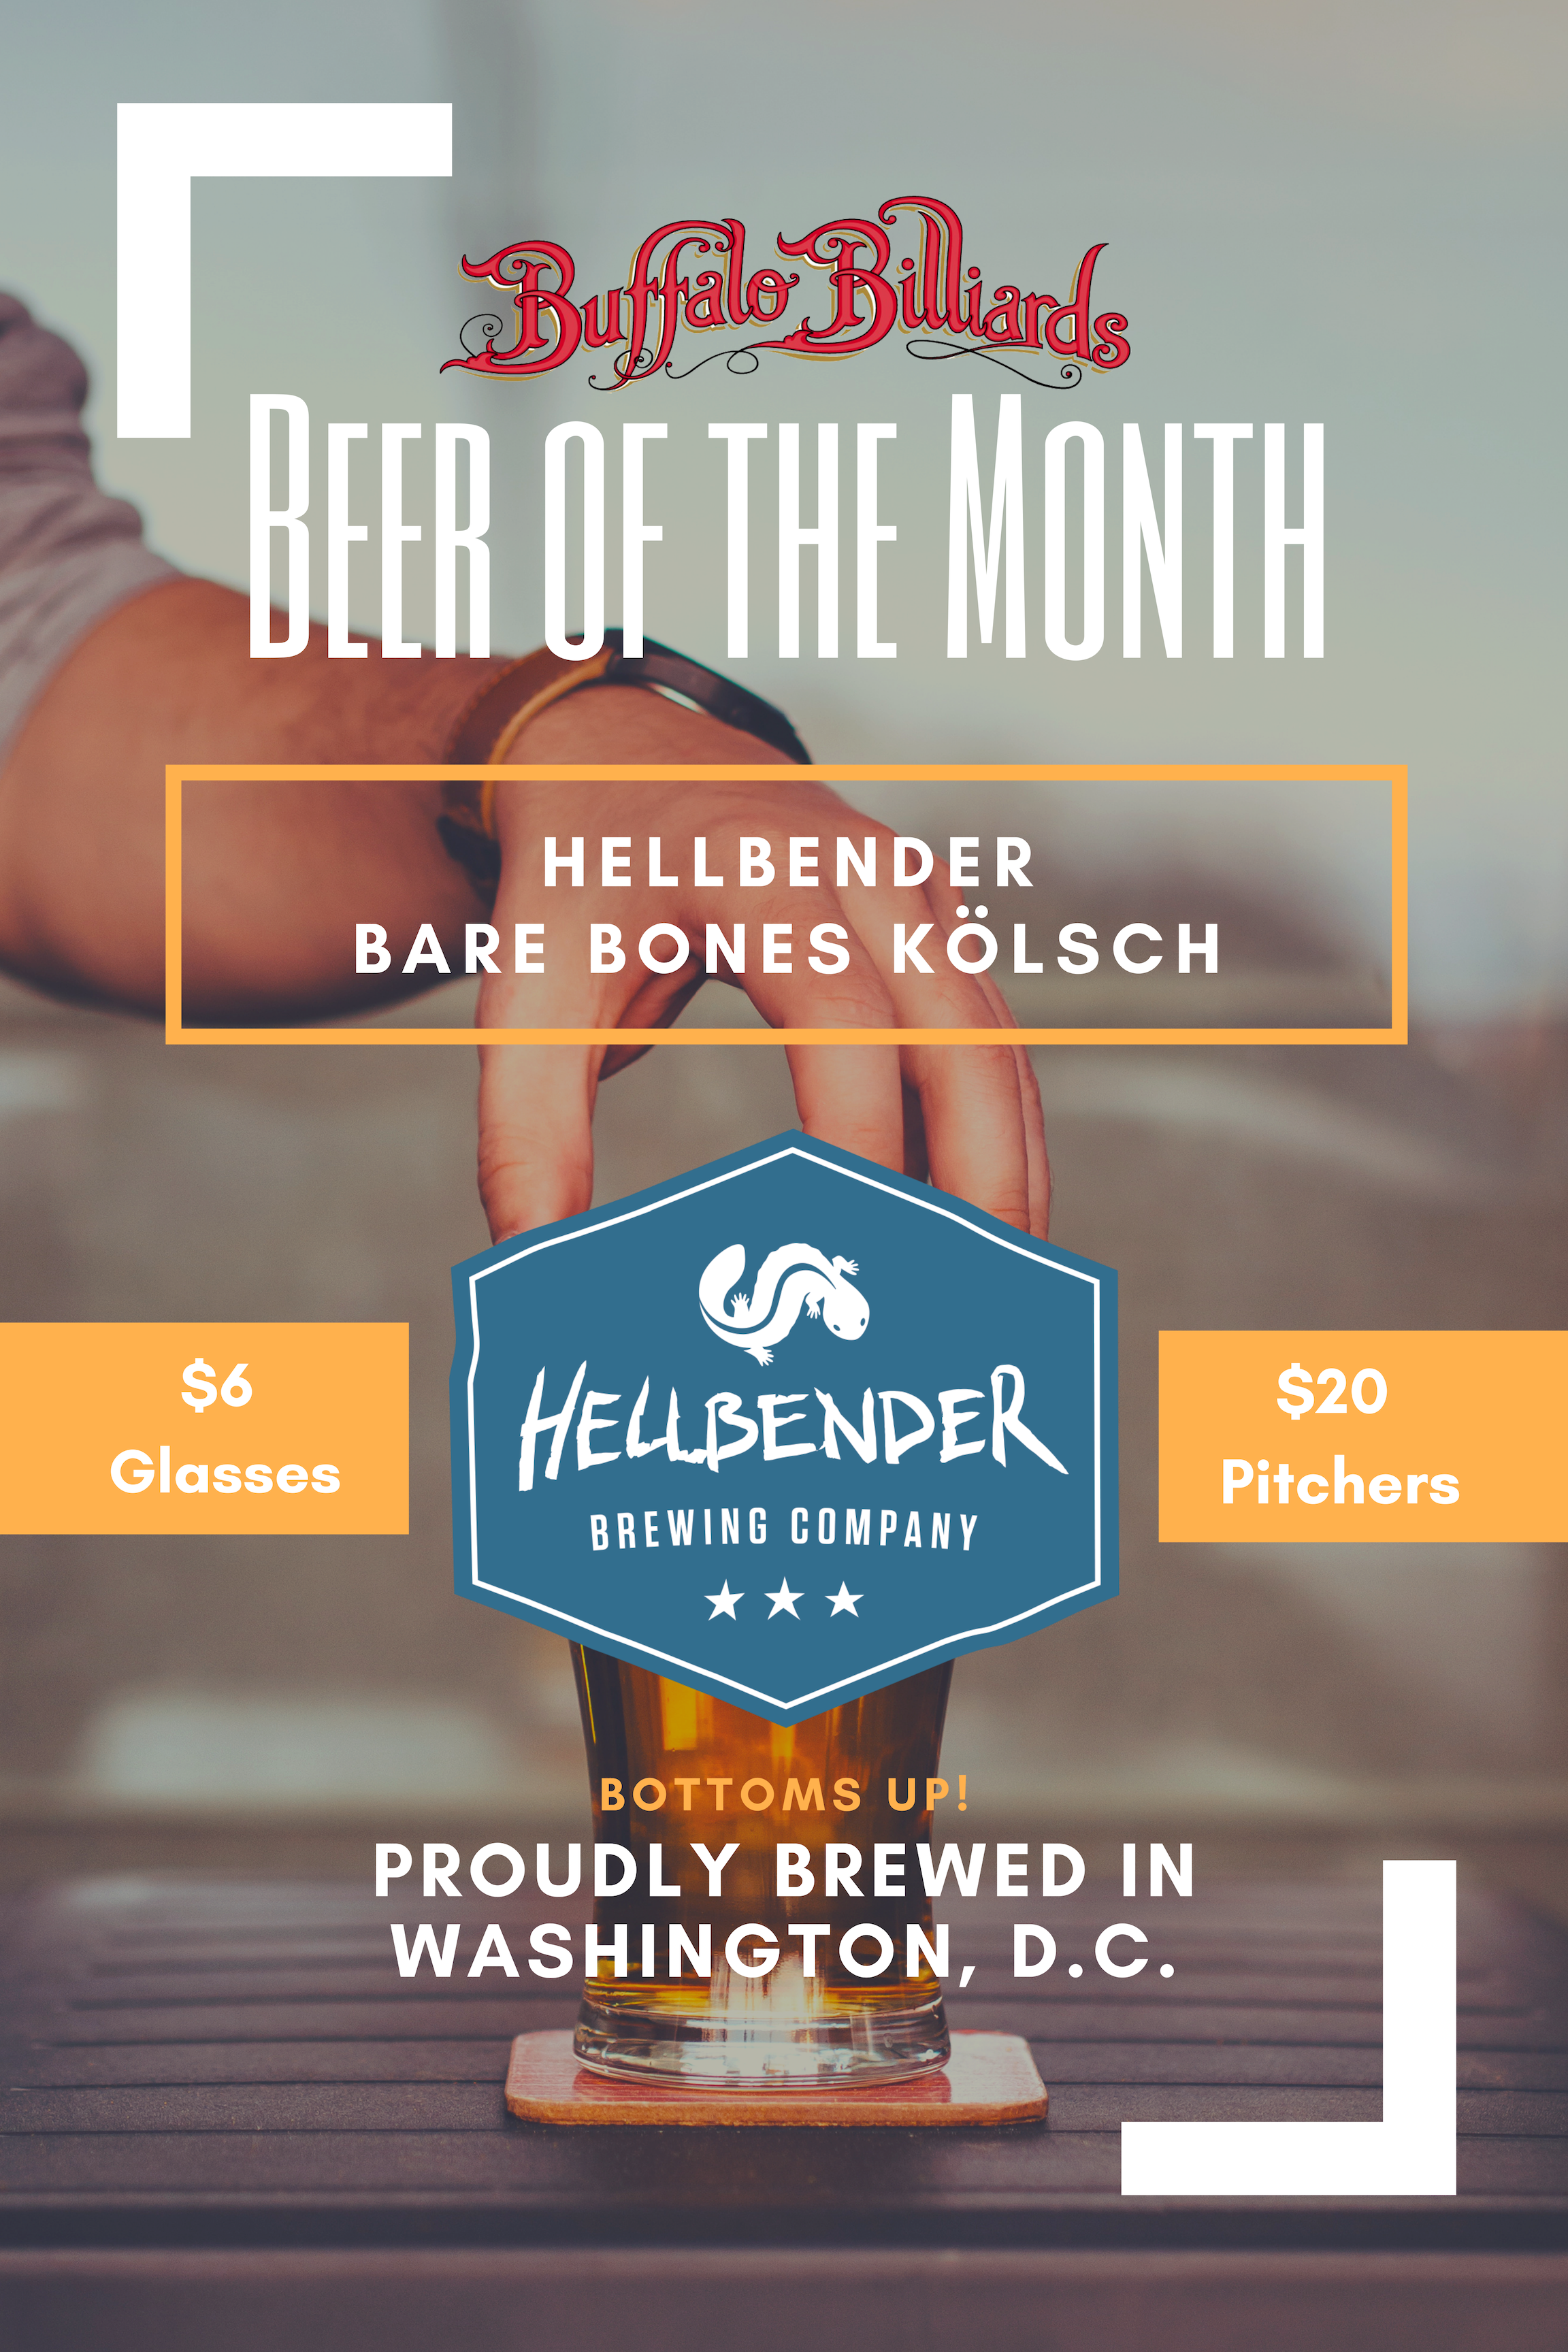 Hellbender - Buffalo Billiards Beer of the Month.png